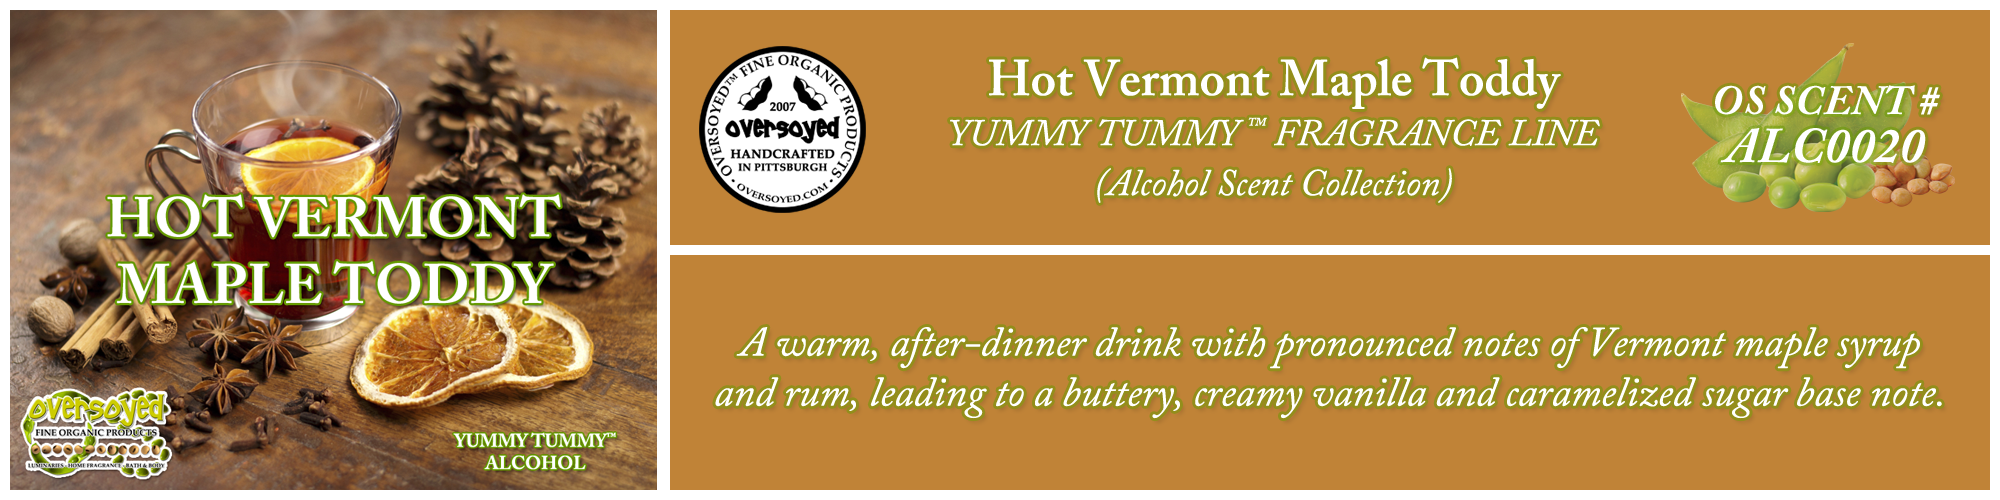 Hot Vermont Maple Toddy Handcrafted Products Collection